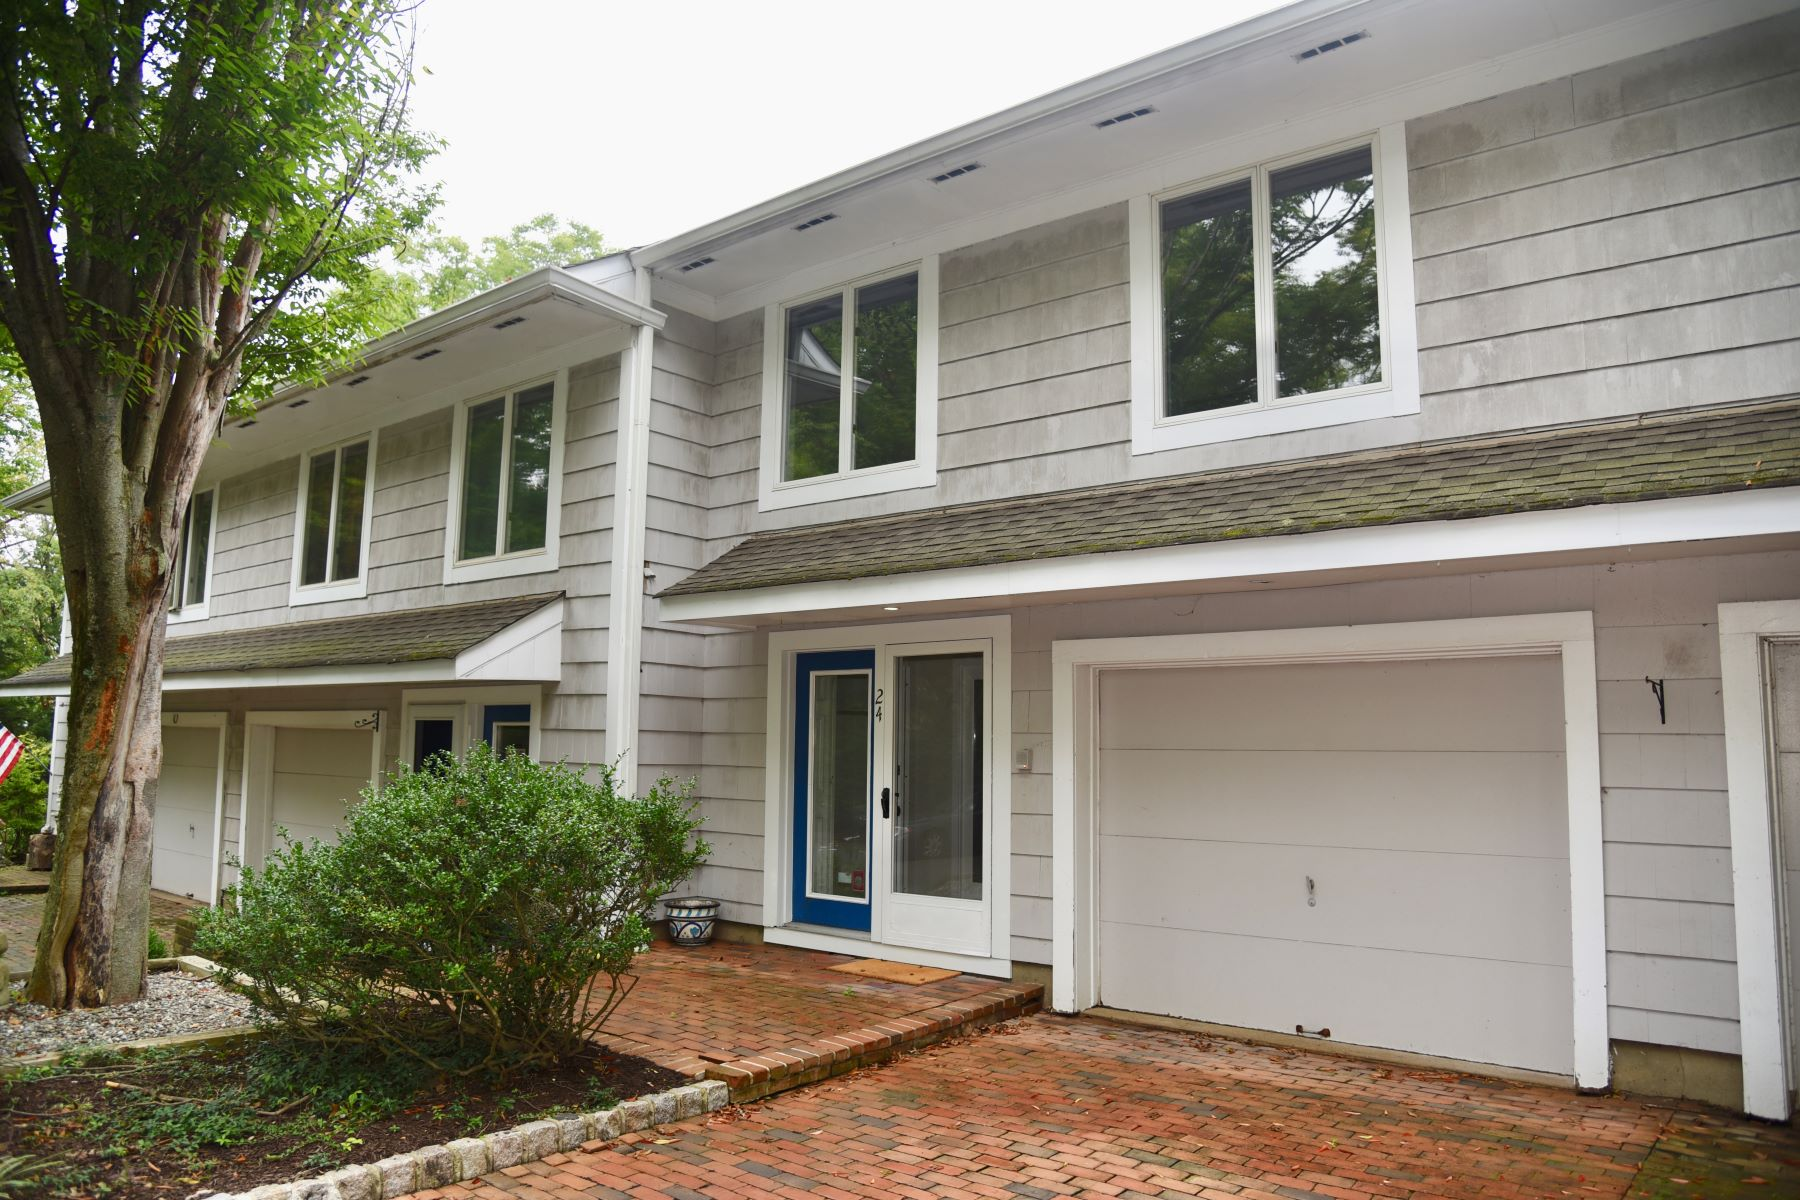 Property for Rent at Princeton Rental - Ideal Location 24 Mountain Avenue, Princeton, New Jersey 08540 United States